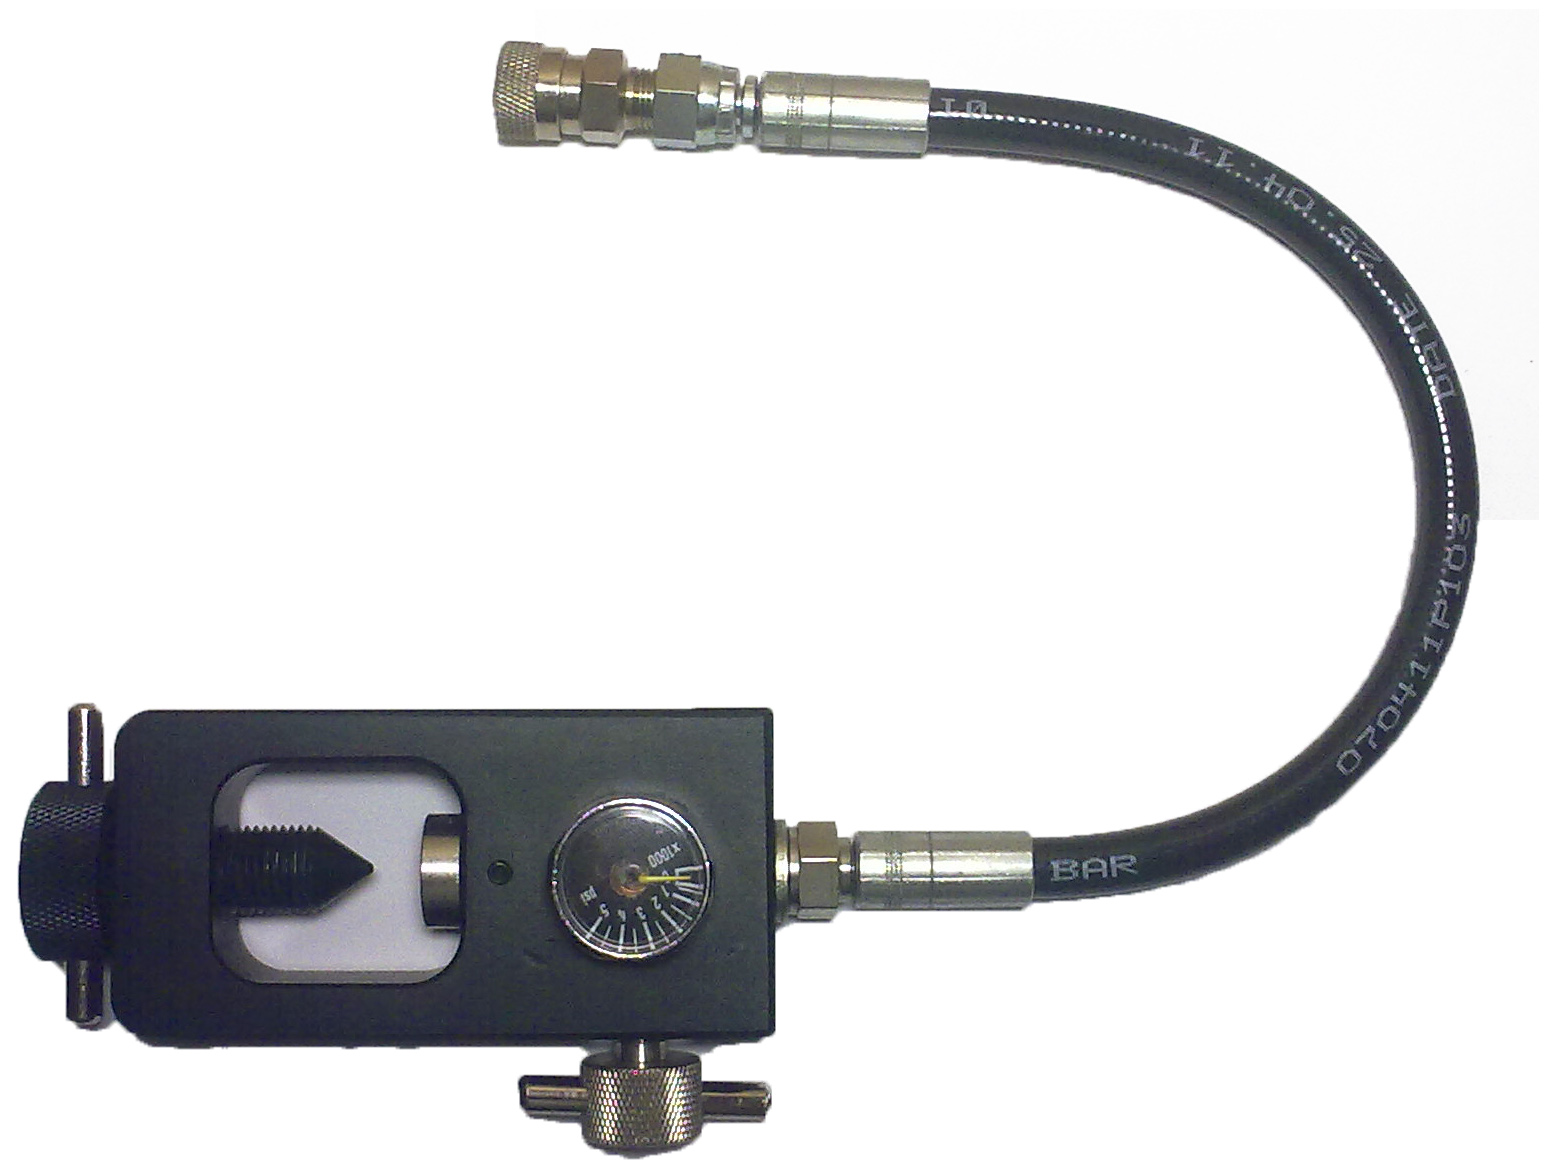 Scuba filling k valve adapter for pcp rifles with female